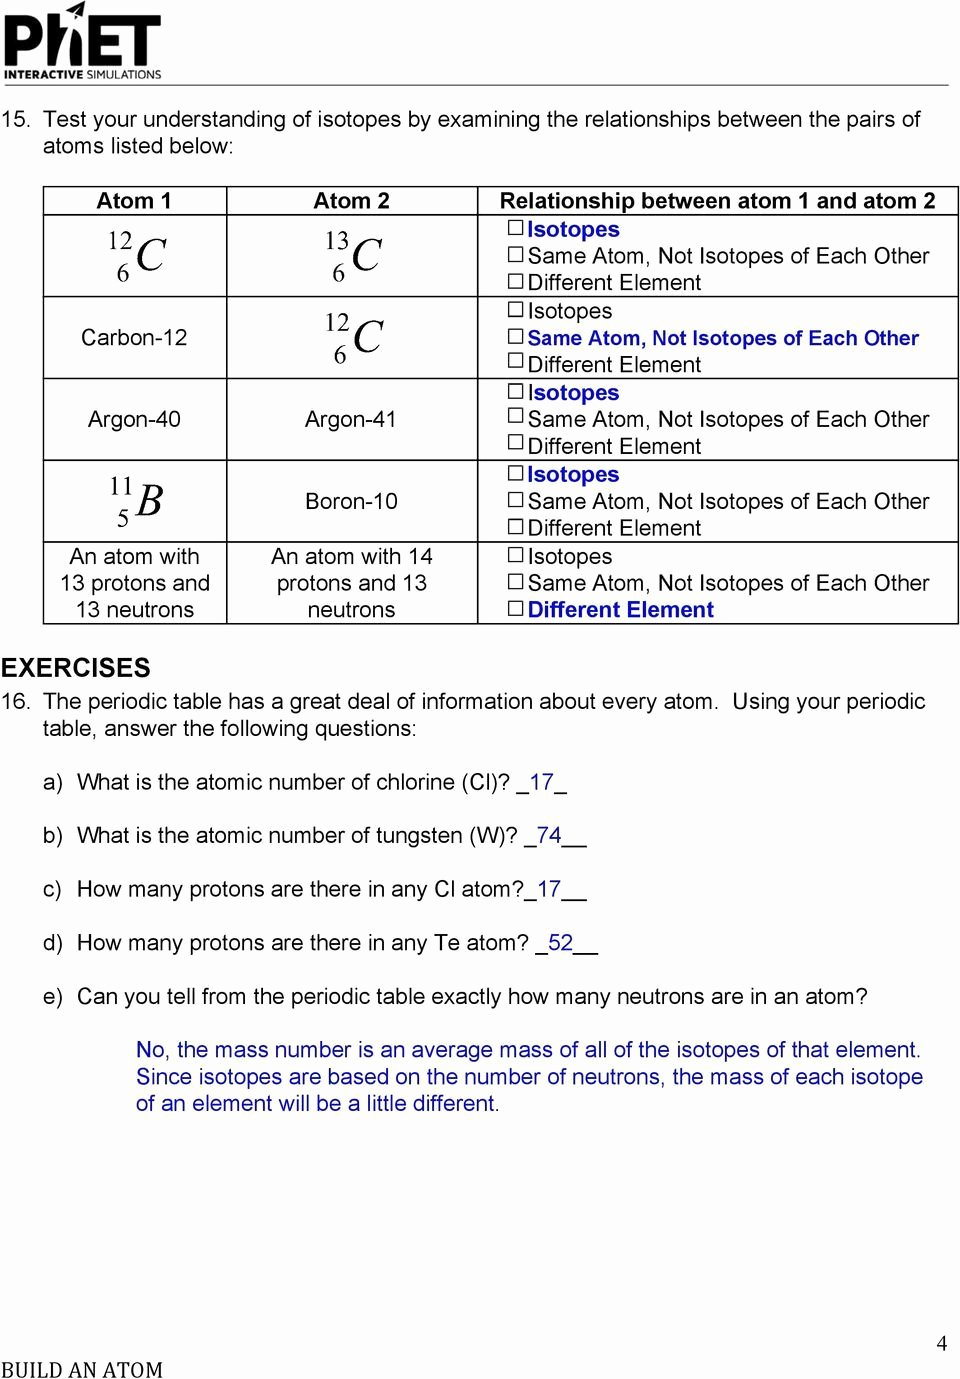 Build An atom Worksheet Answers Fresh Electrons In atoms Worksheet Answers